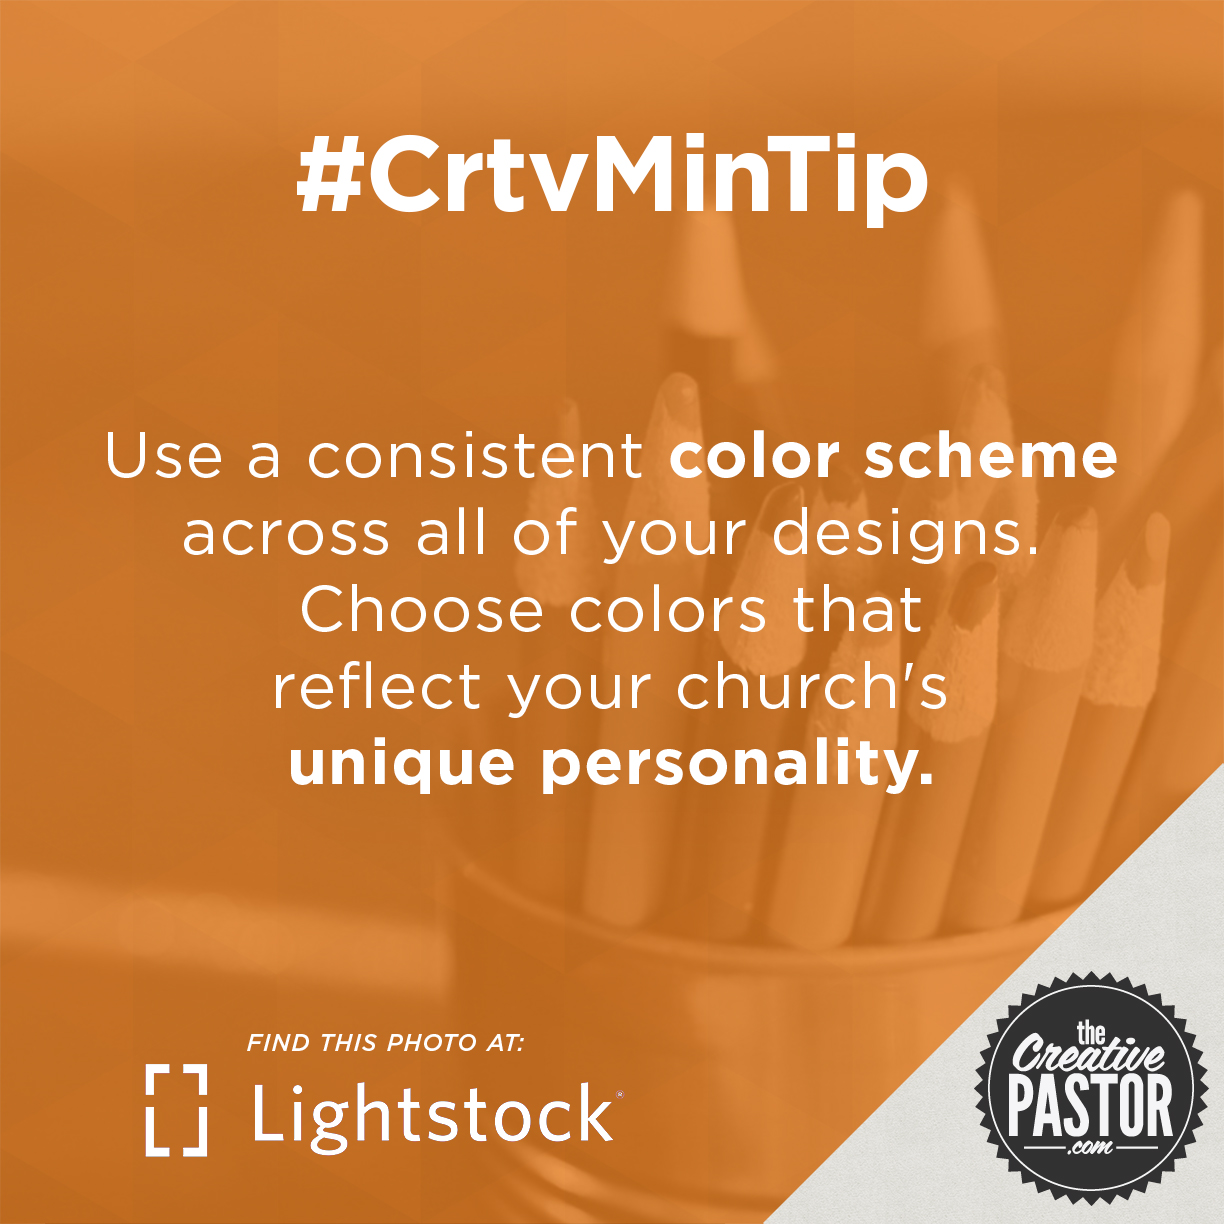 Use a consistent color scheme across all of your designs. Choose colors that reflect your church's unique personality.